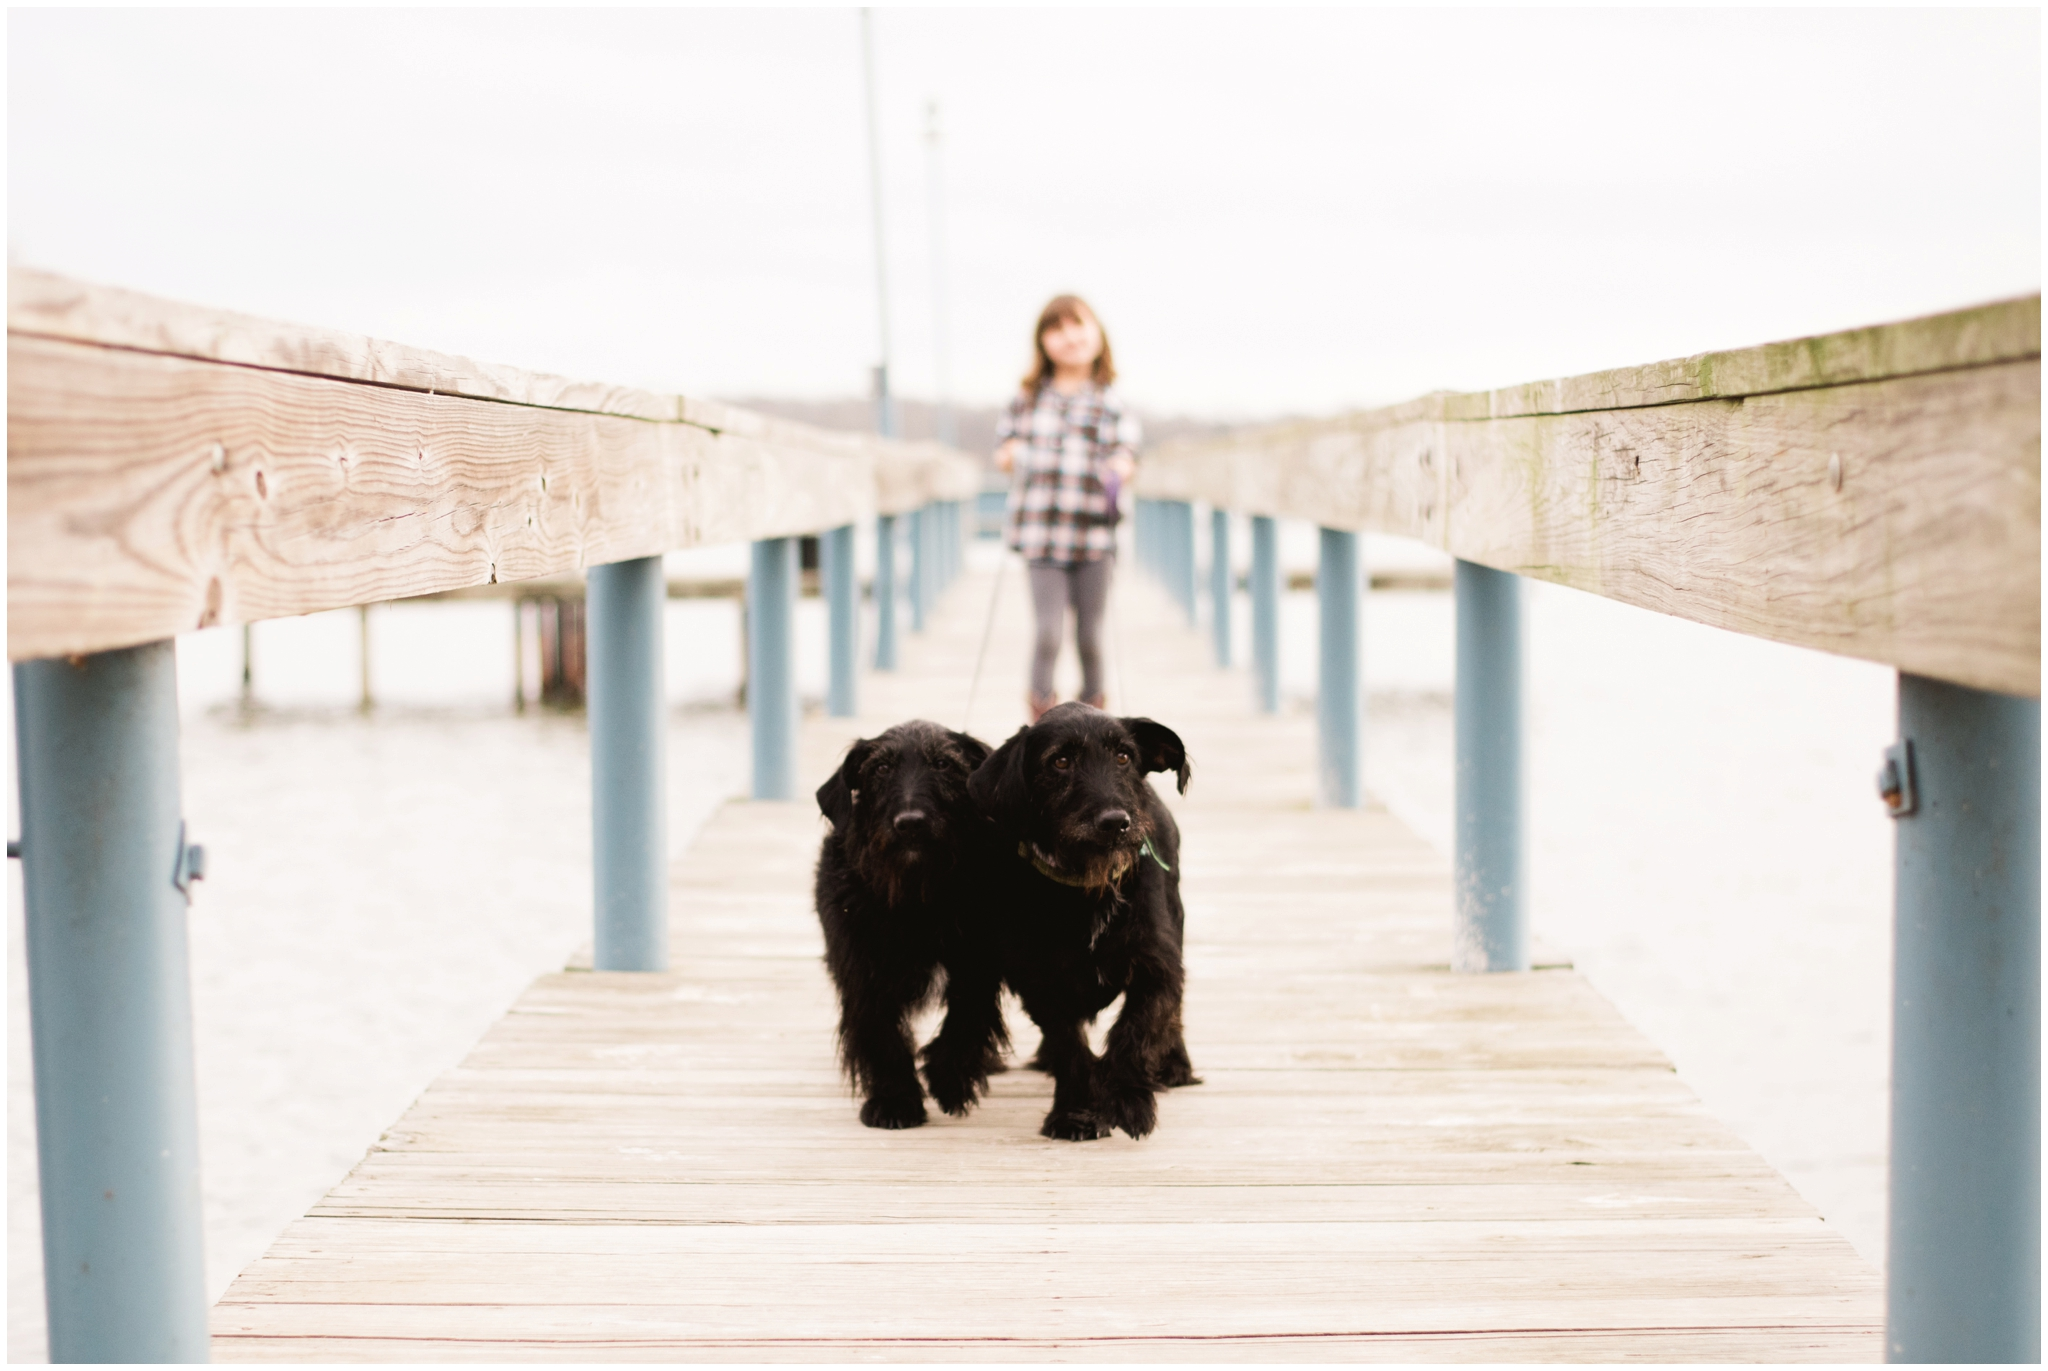 This is our dog StephenRiley on the right with his twin sister Lucy :)